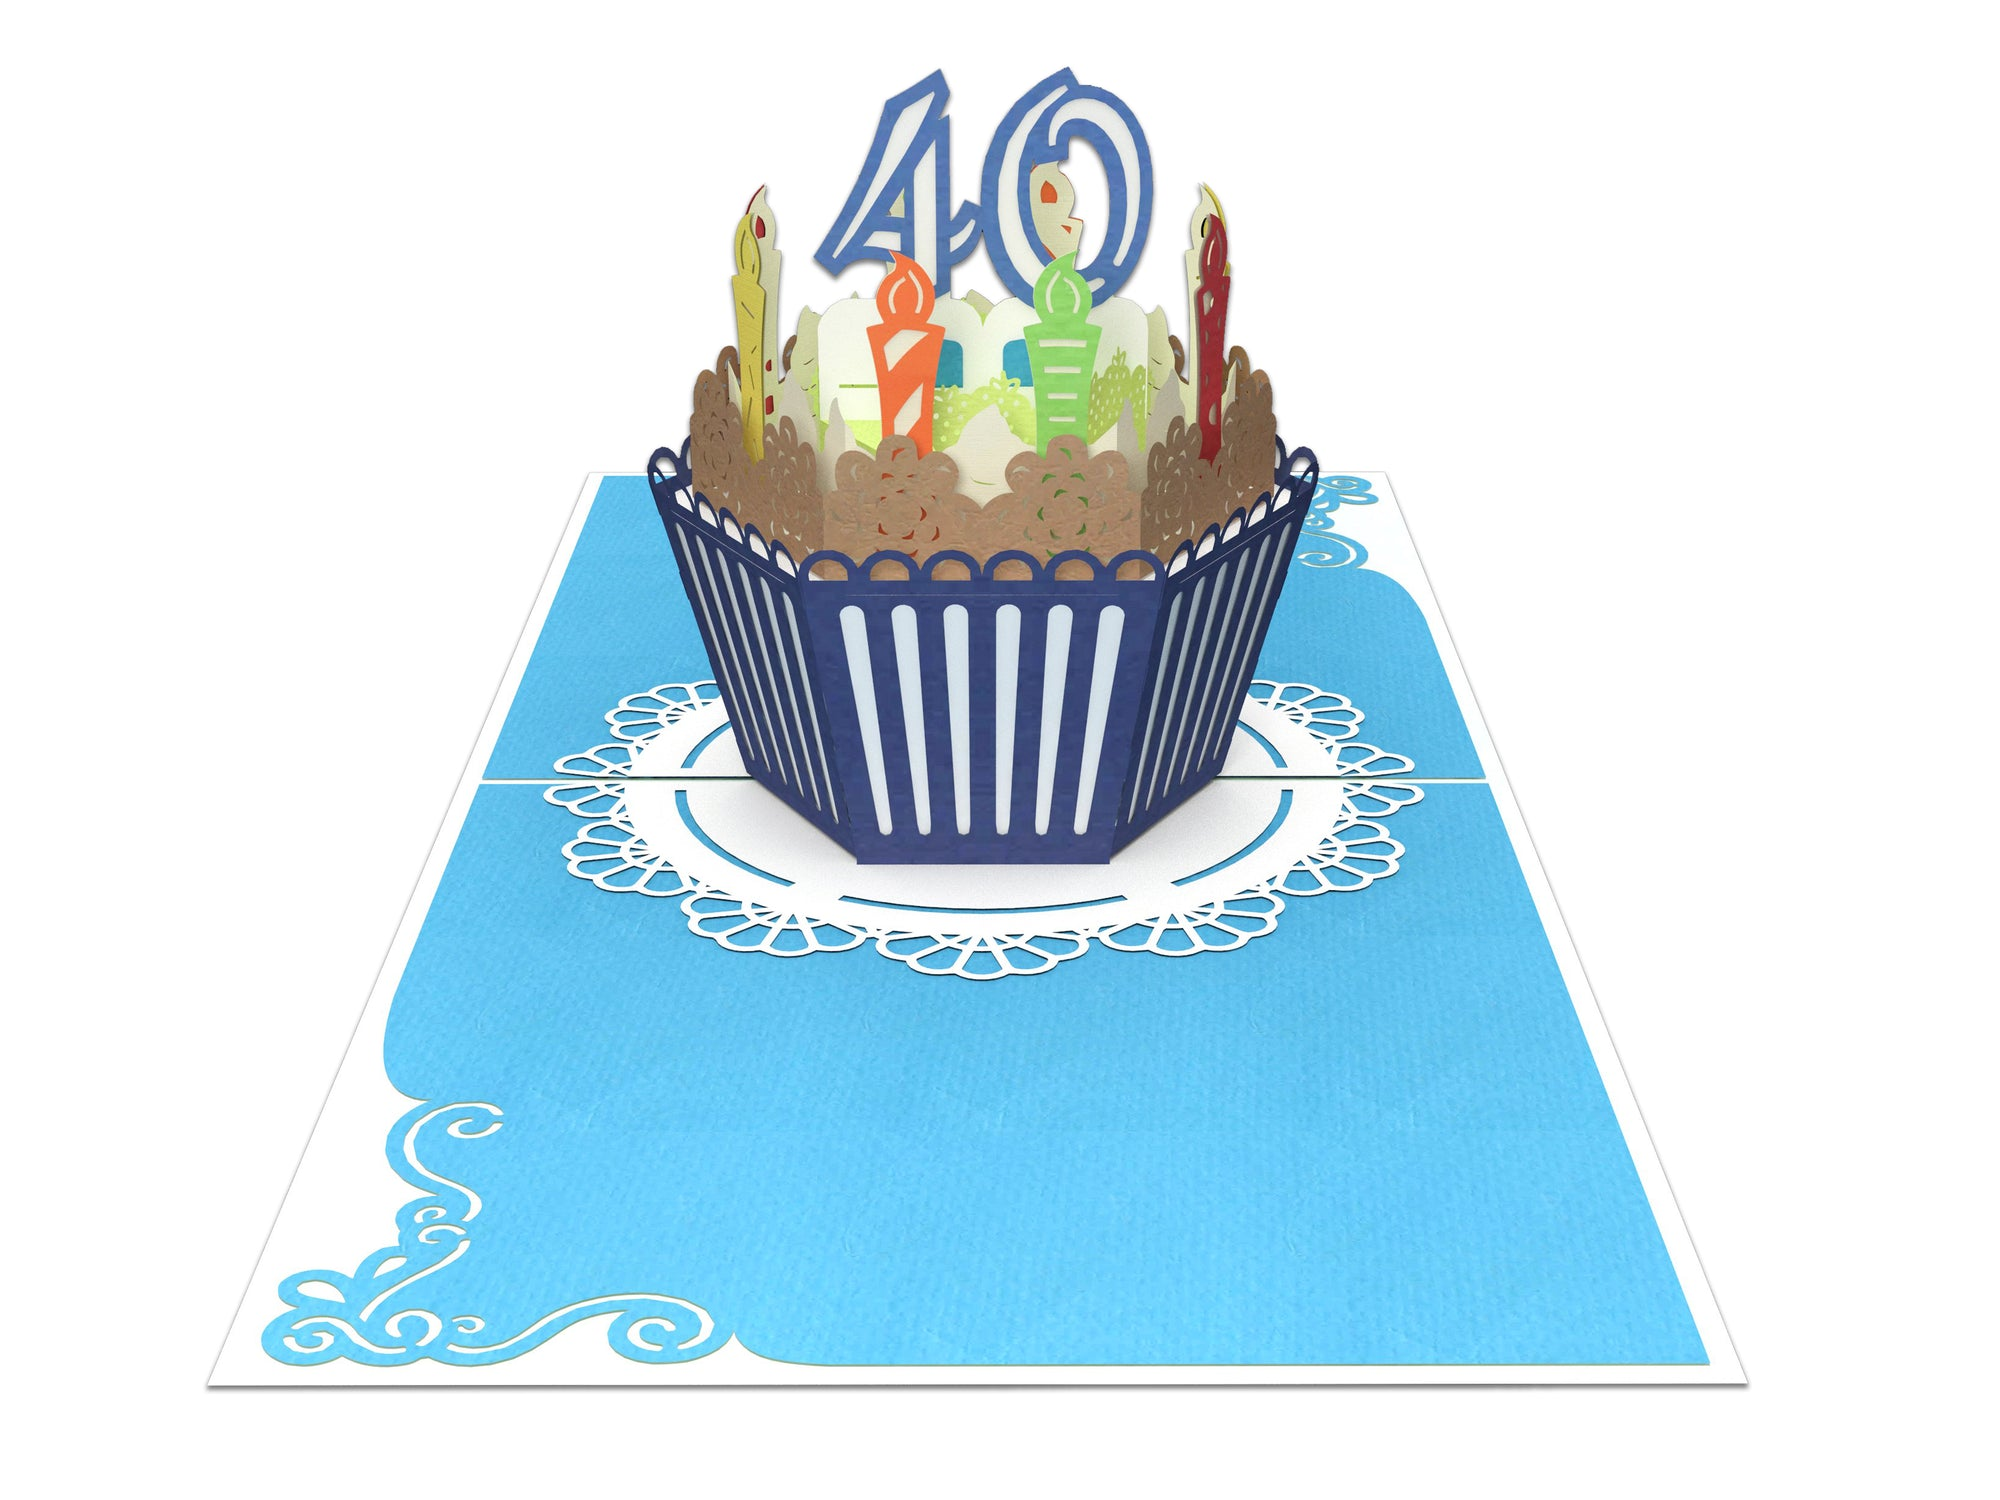 Superb 40Th Birthday Cake For Him 3D Creative Popcard Creative Popcards Personalised Birthday Cards Paralily Jamesorg